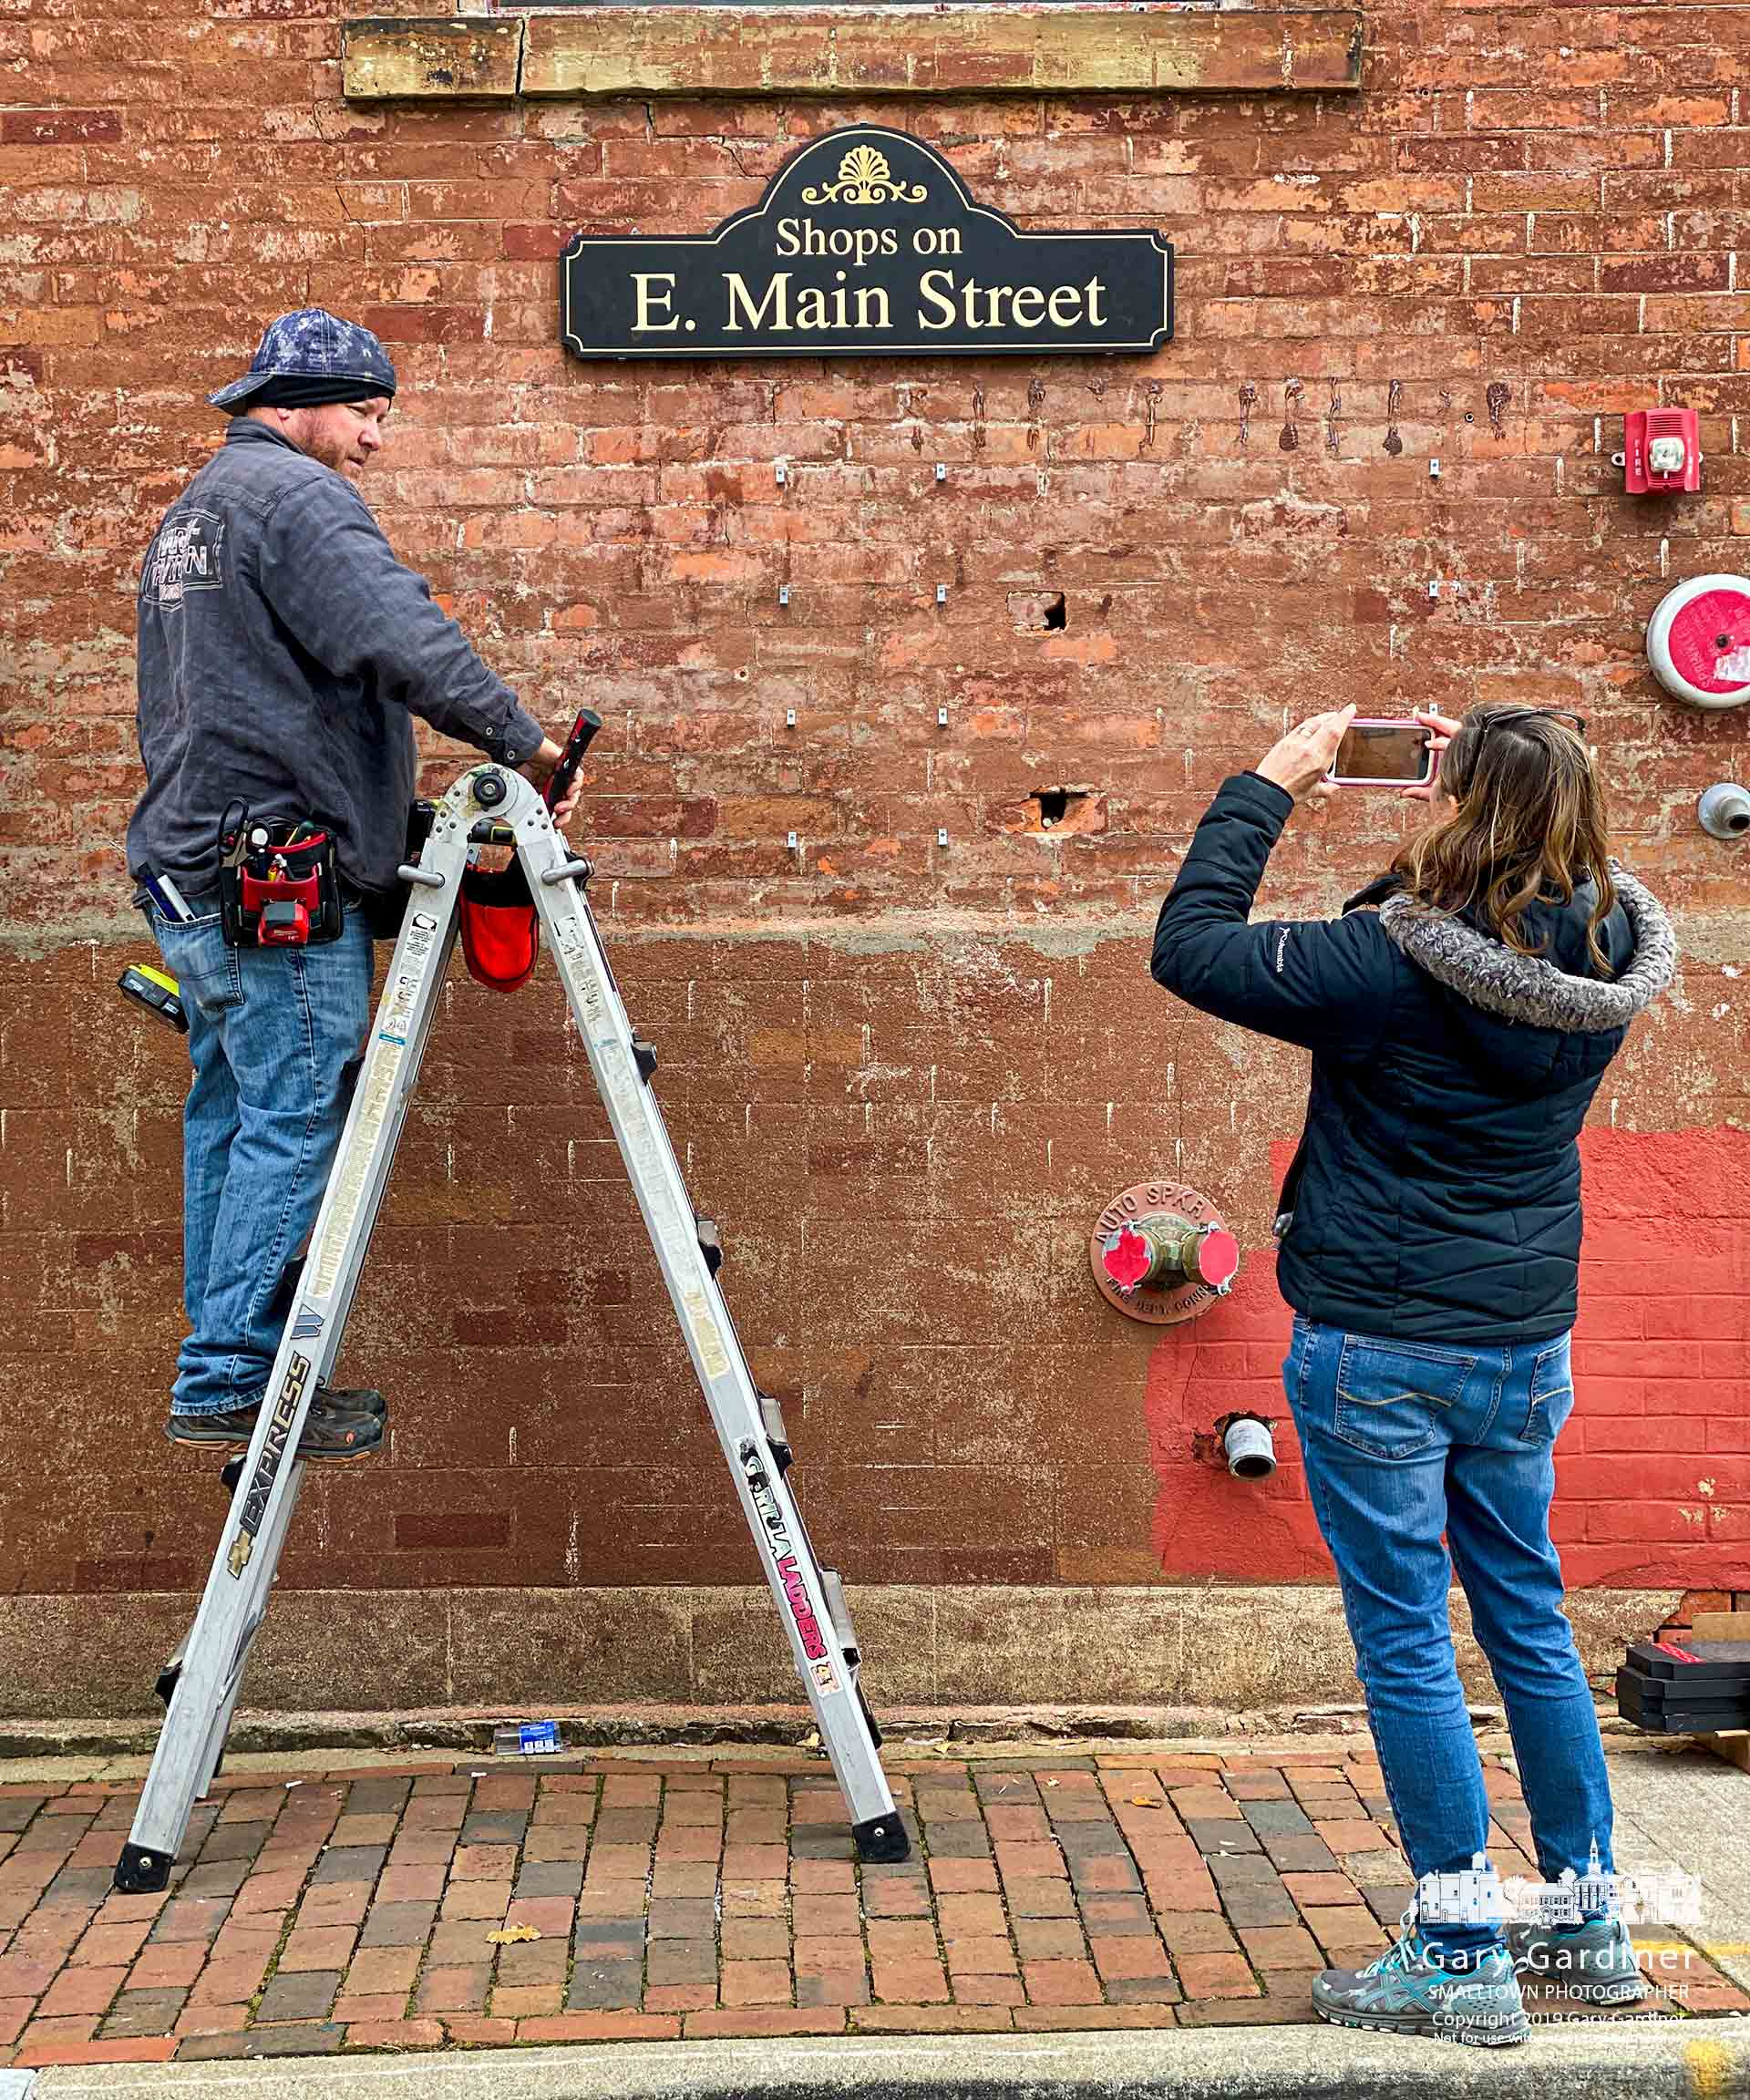 A set of signs noting the businesses on East Main Street are attached to the side of the Old Bag o' Nails building at State Street creating wayfaring notices for people headed south on State. My Final Photo for Nov. 21, 2019.